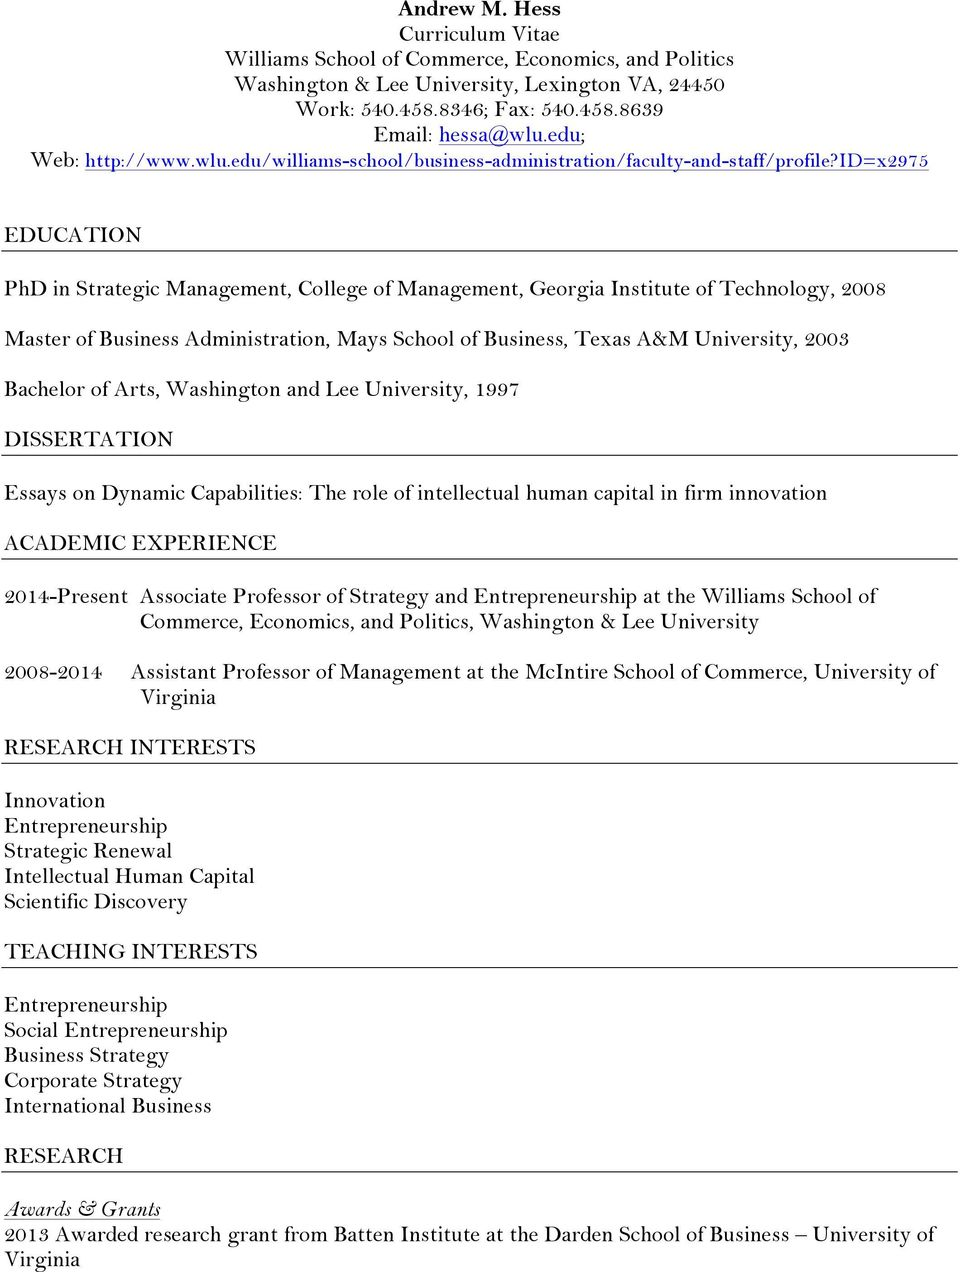 id=x2975 EDUCATION PhD in Strategic Management, College of Management, Georgia Institute of Technology, 2008 Master of Business Administration, Mays School of Business, Texas A&M University, 2003